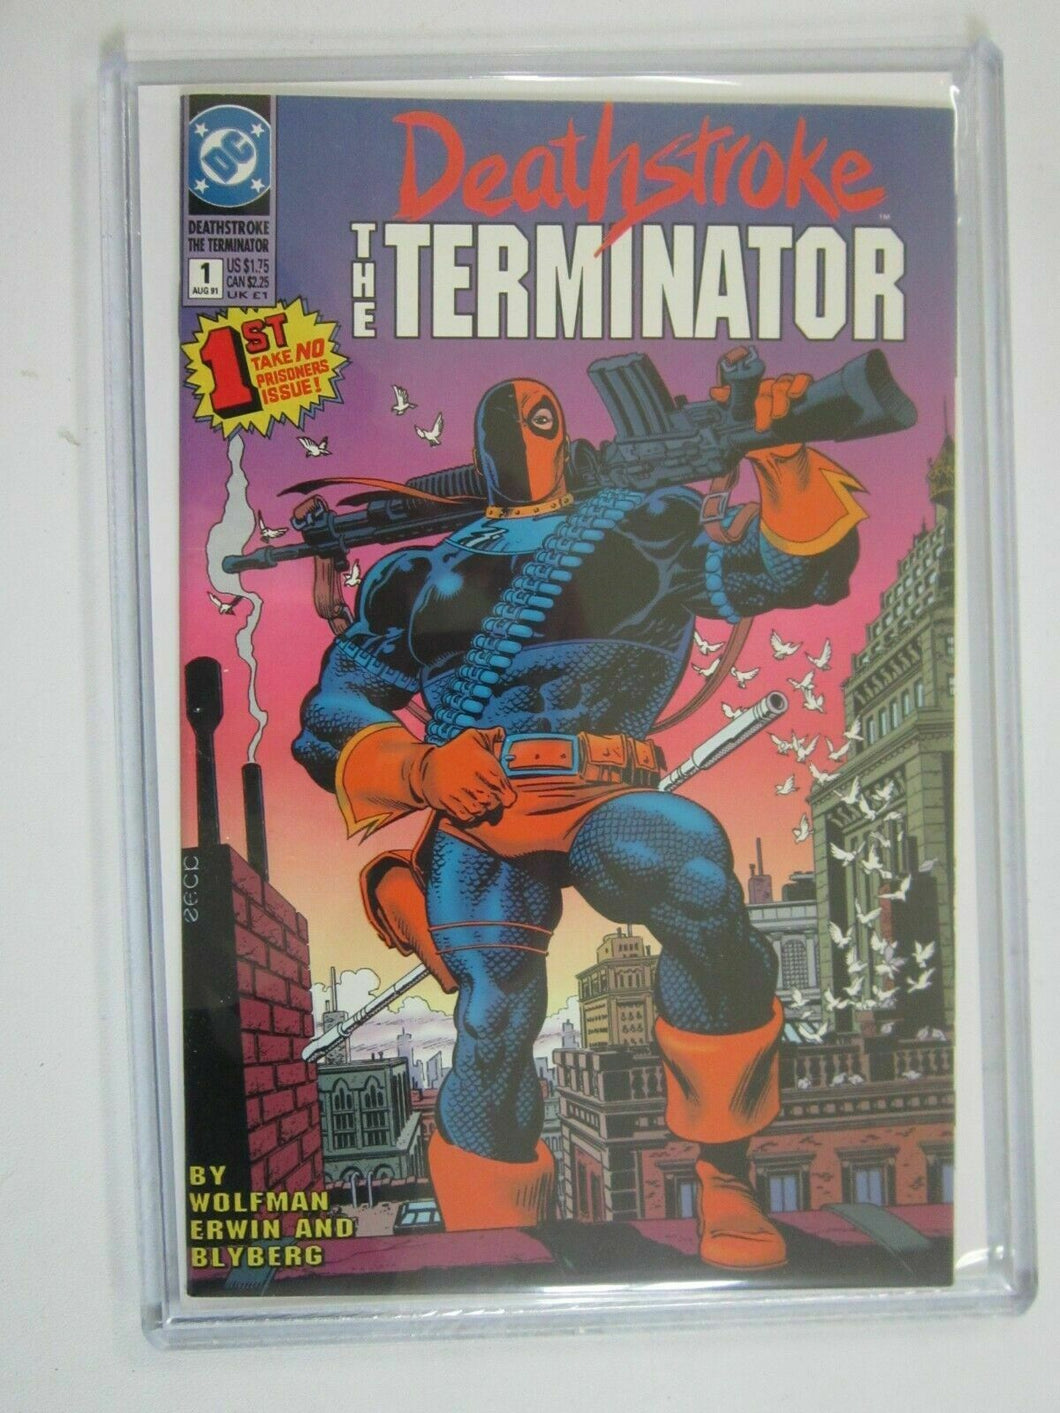 Deathstroke the Terminator #1 8.5 VF+ (1991)